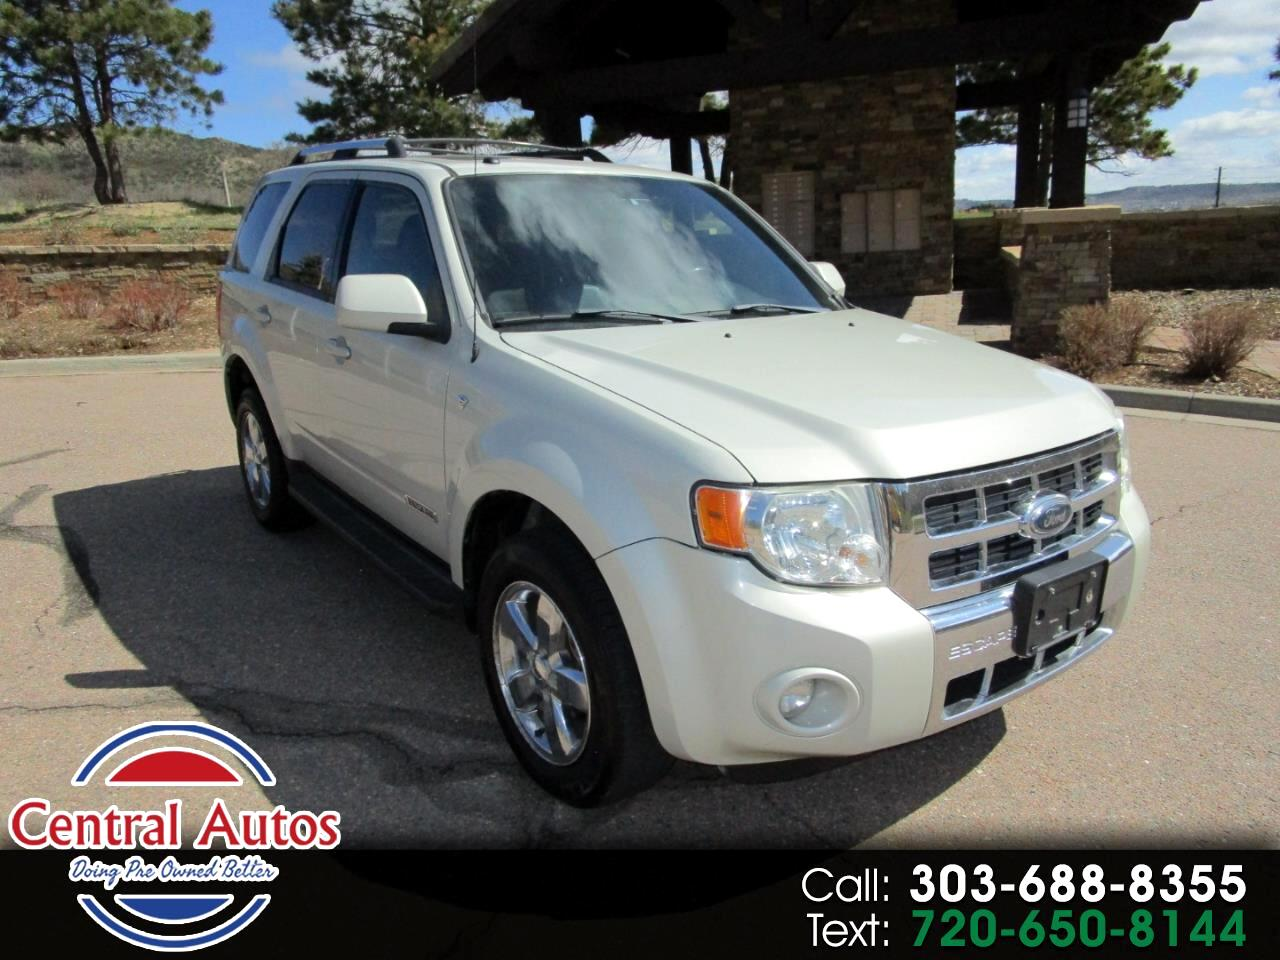 Ford Escape 4WD 4dr V6 Auto Limited 2008